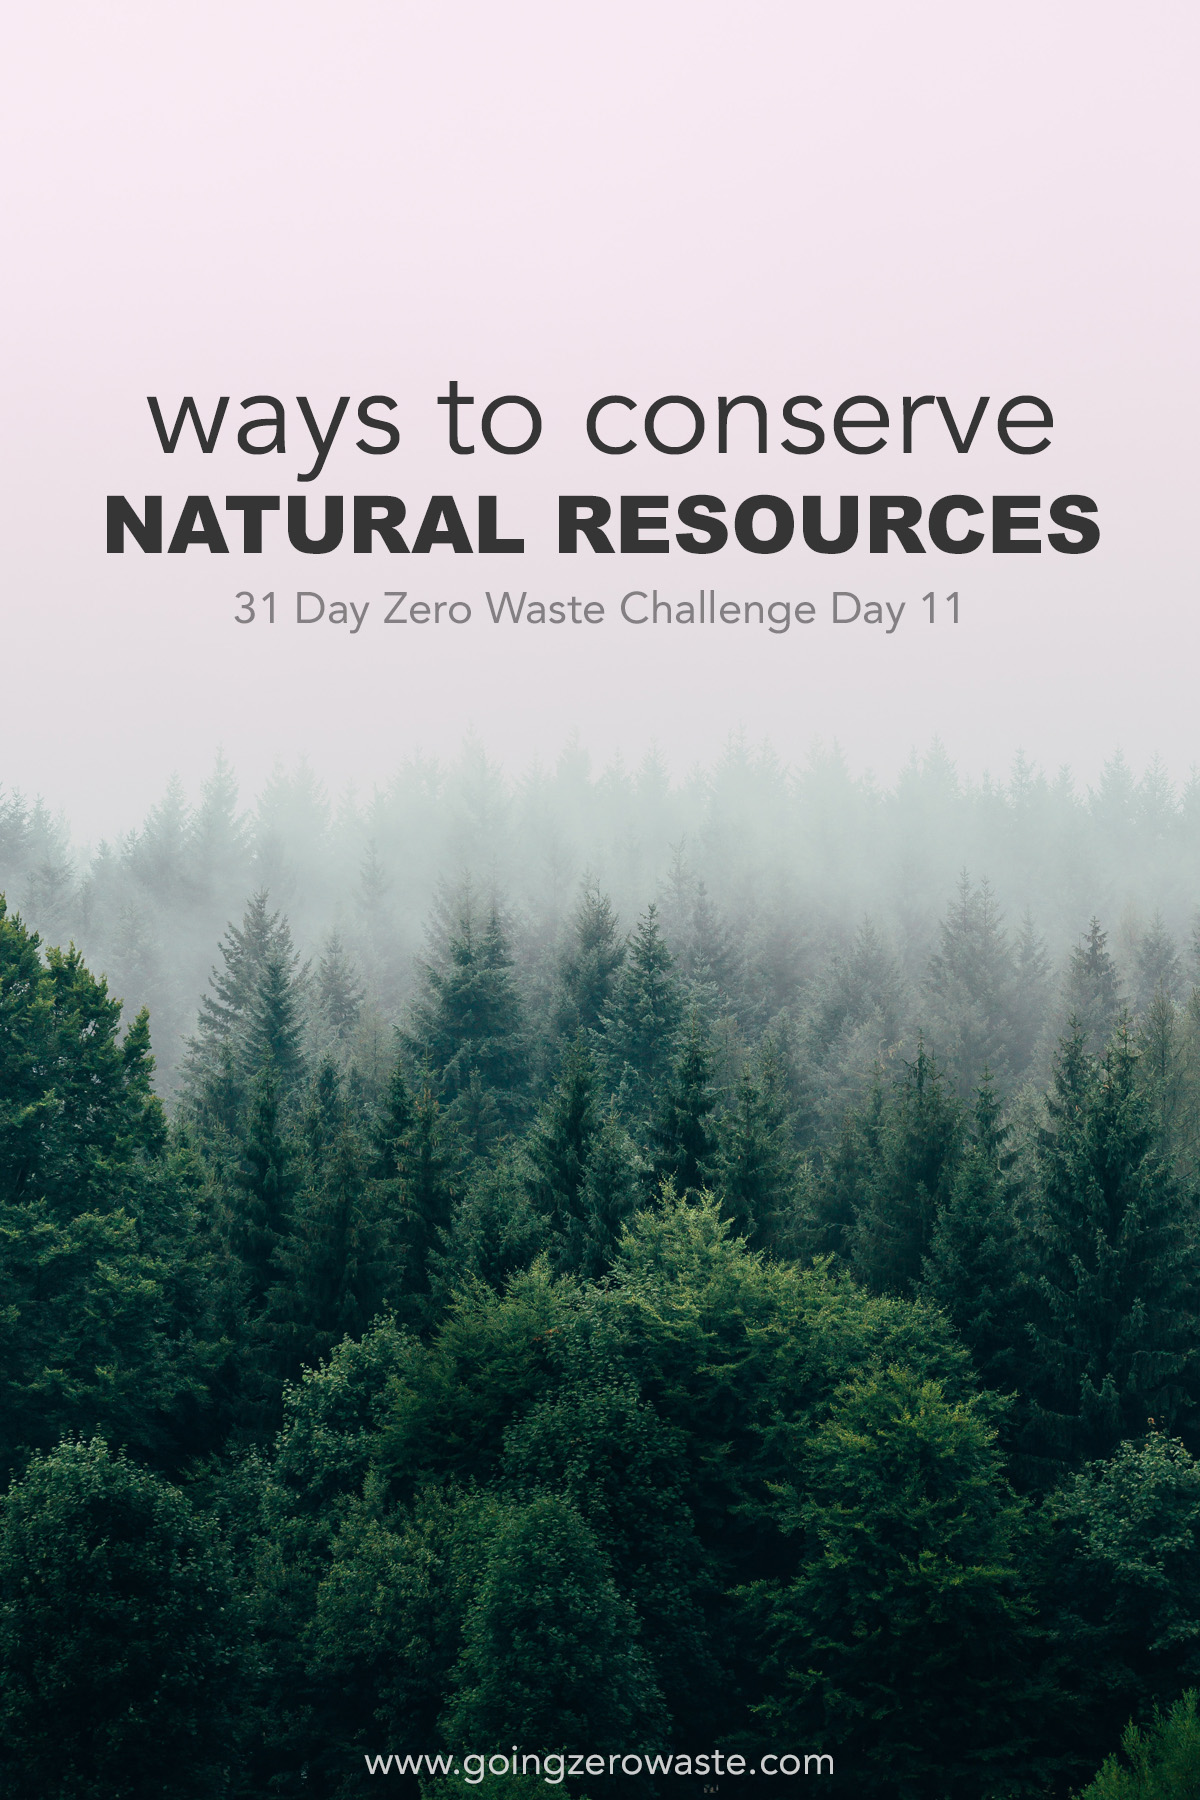 Ways to Conserve our Natural Resources Day 11 of the Zero Waste Challenge from www.goingzerowaste.com #conserve #ecofriendly #zerowaste #zerowastechallenge